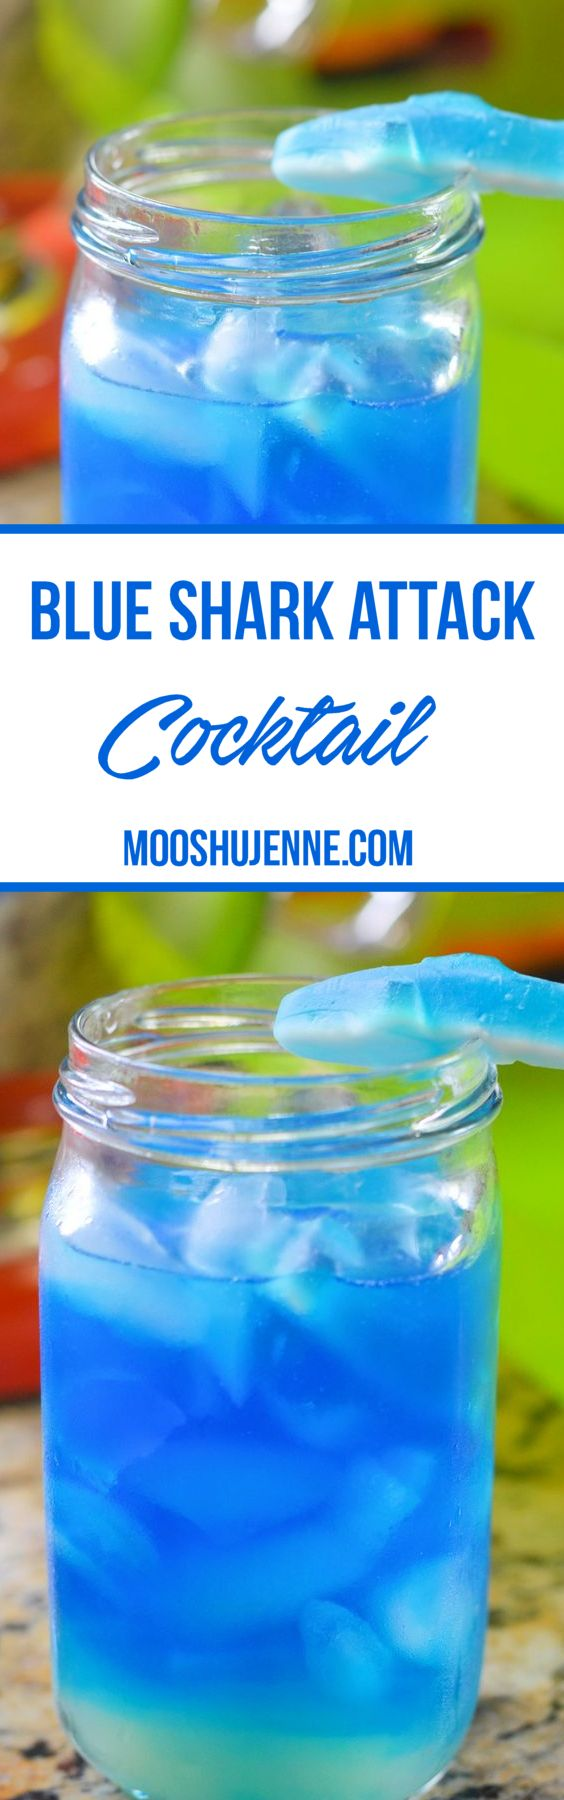 Blue shark attack cocktail contains rum, pineapple juice, blue curacao, and gummy sharks.